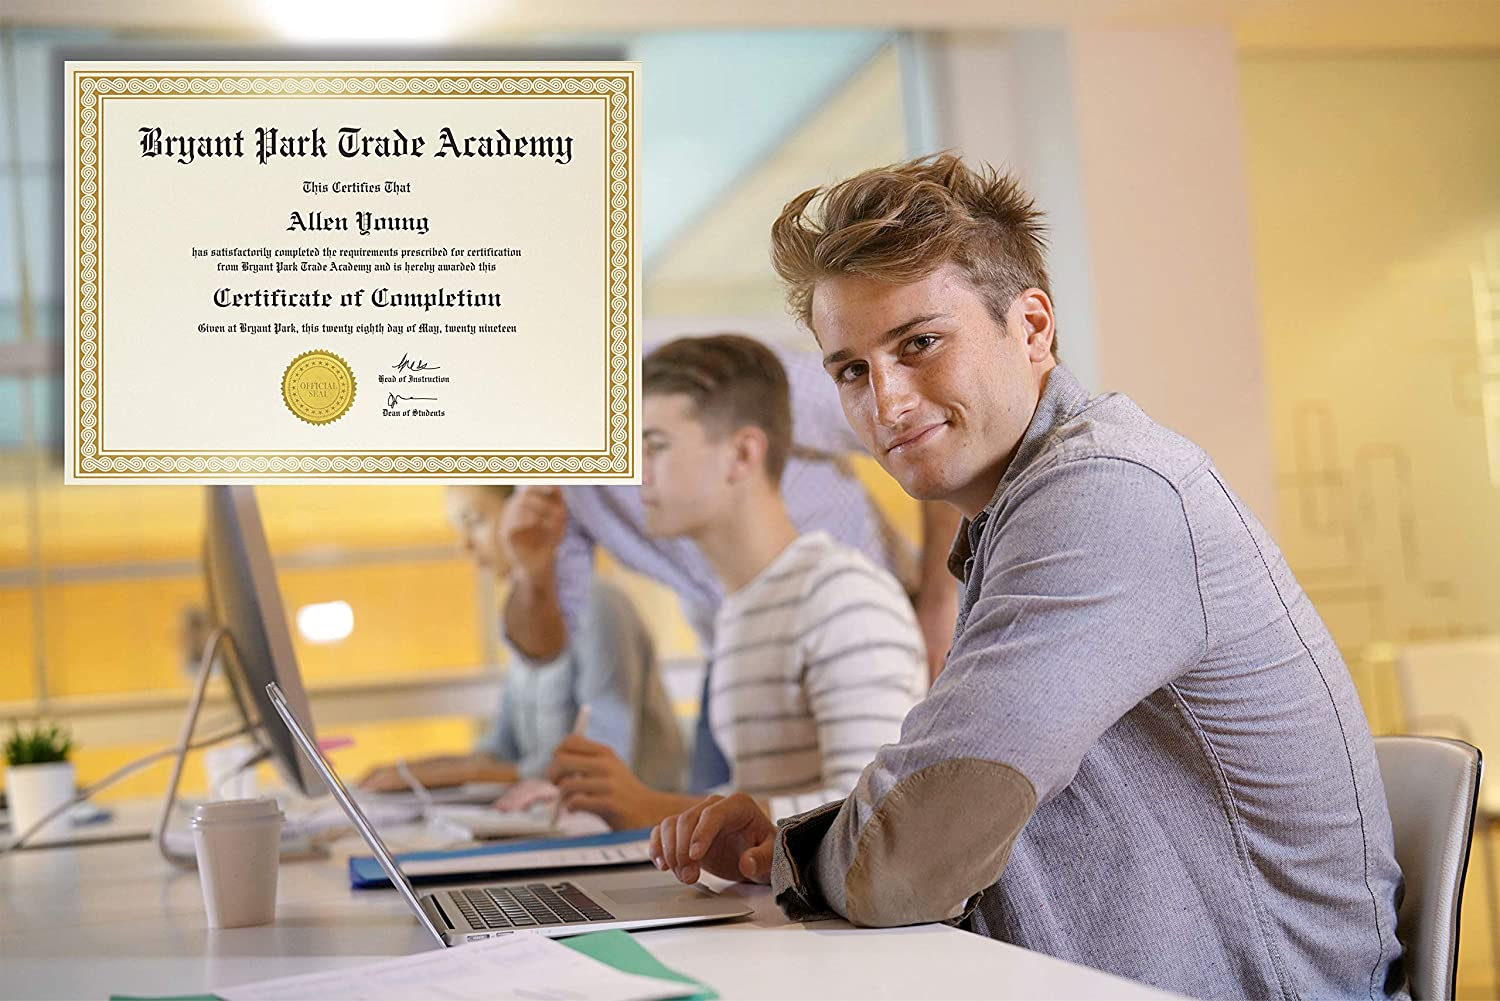 Diploma Certificate Paper Gold Foil Metallic Border by Better Office Products Ivory Letter Size Blank Paper 8.5 x 11 Inches 50 Sheet Award Certificate Paper Laser and Inkjet Printer Friendly